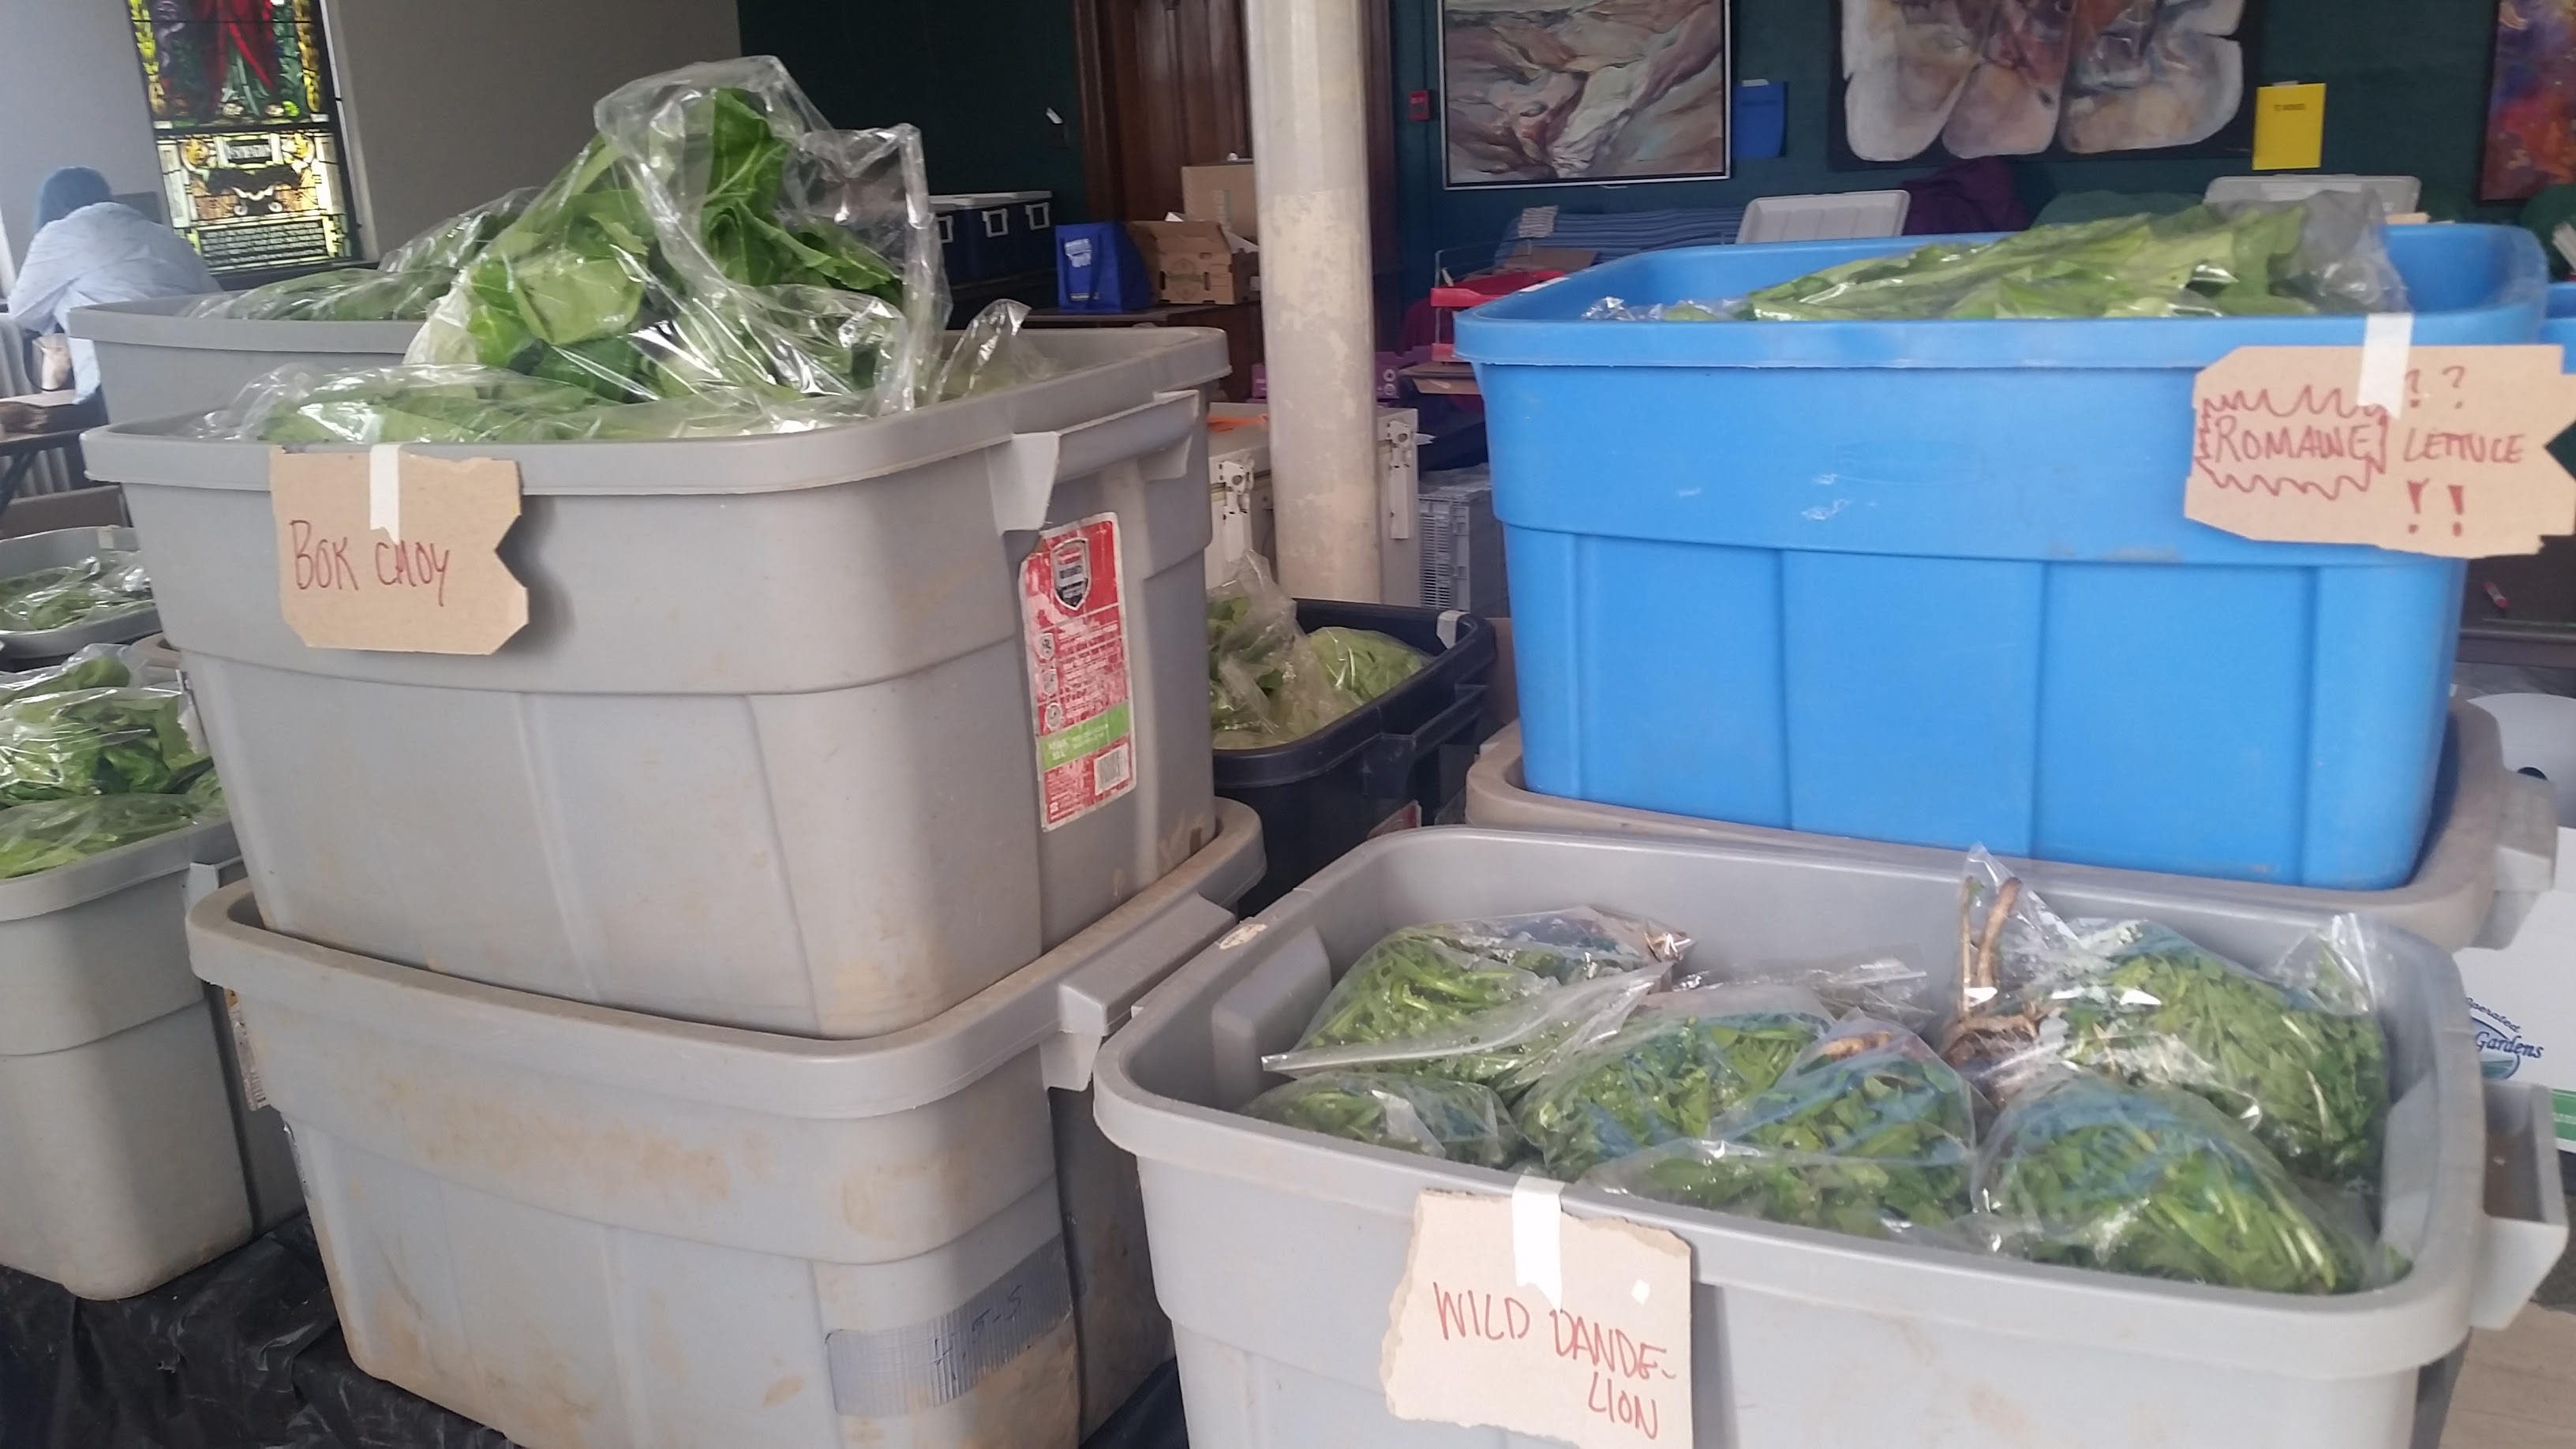 Plastic tubs full of individally bagged greens with cardboard labels affixed on each tub